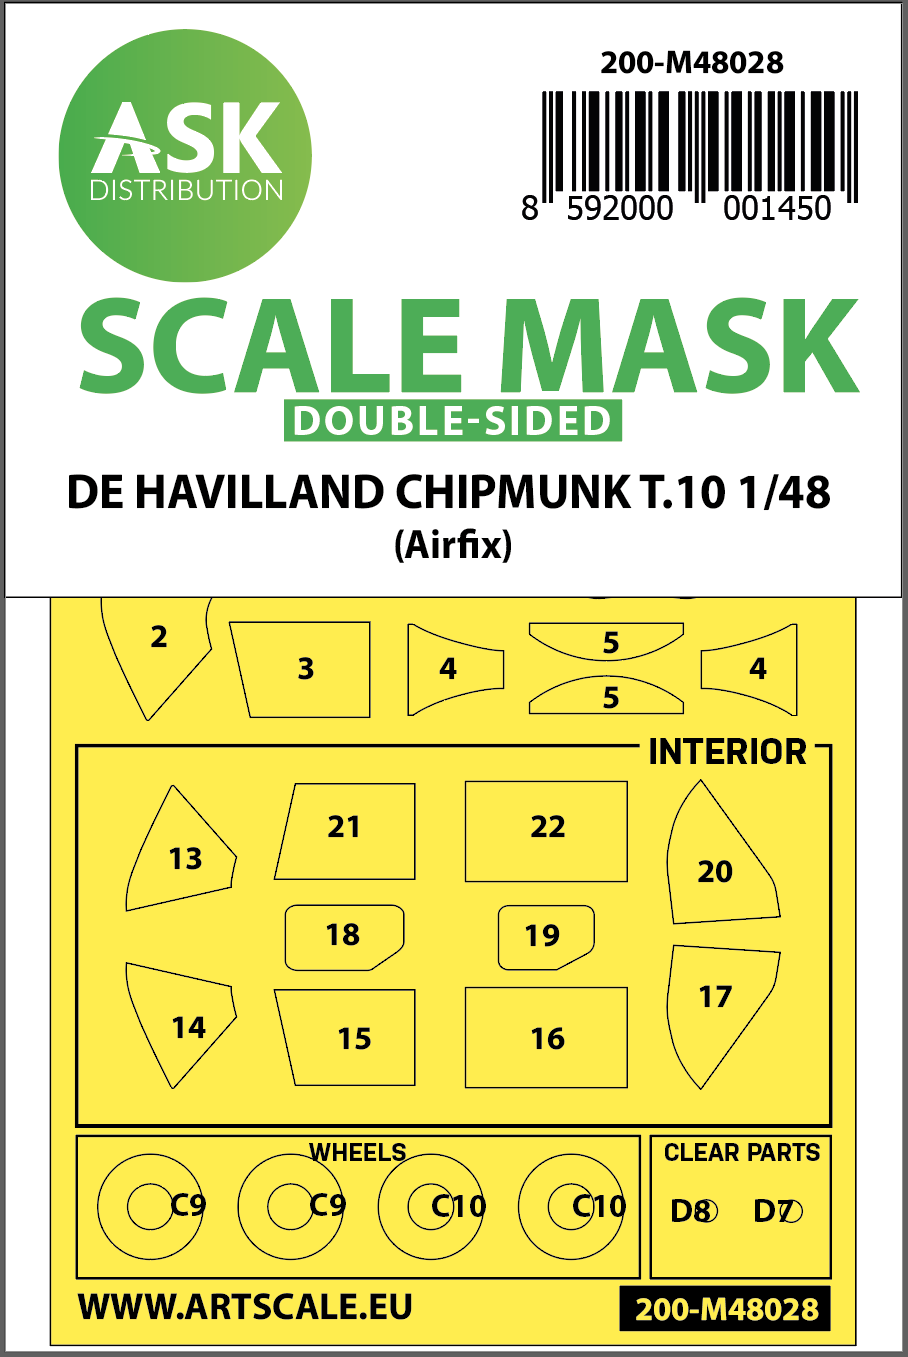 1/48 De Havilland Chipmunk T.10 double-sided painting mask for Airfix